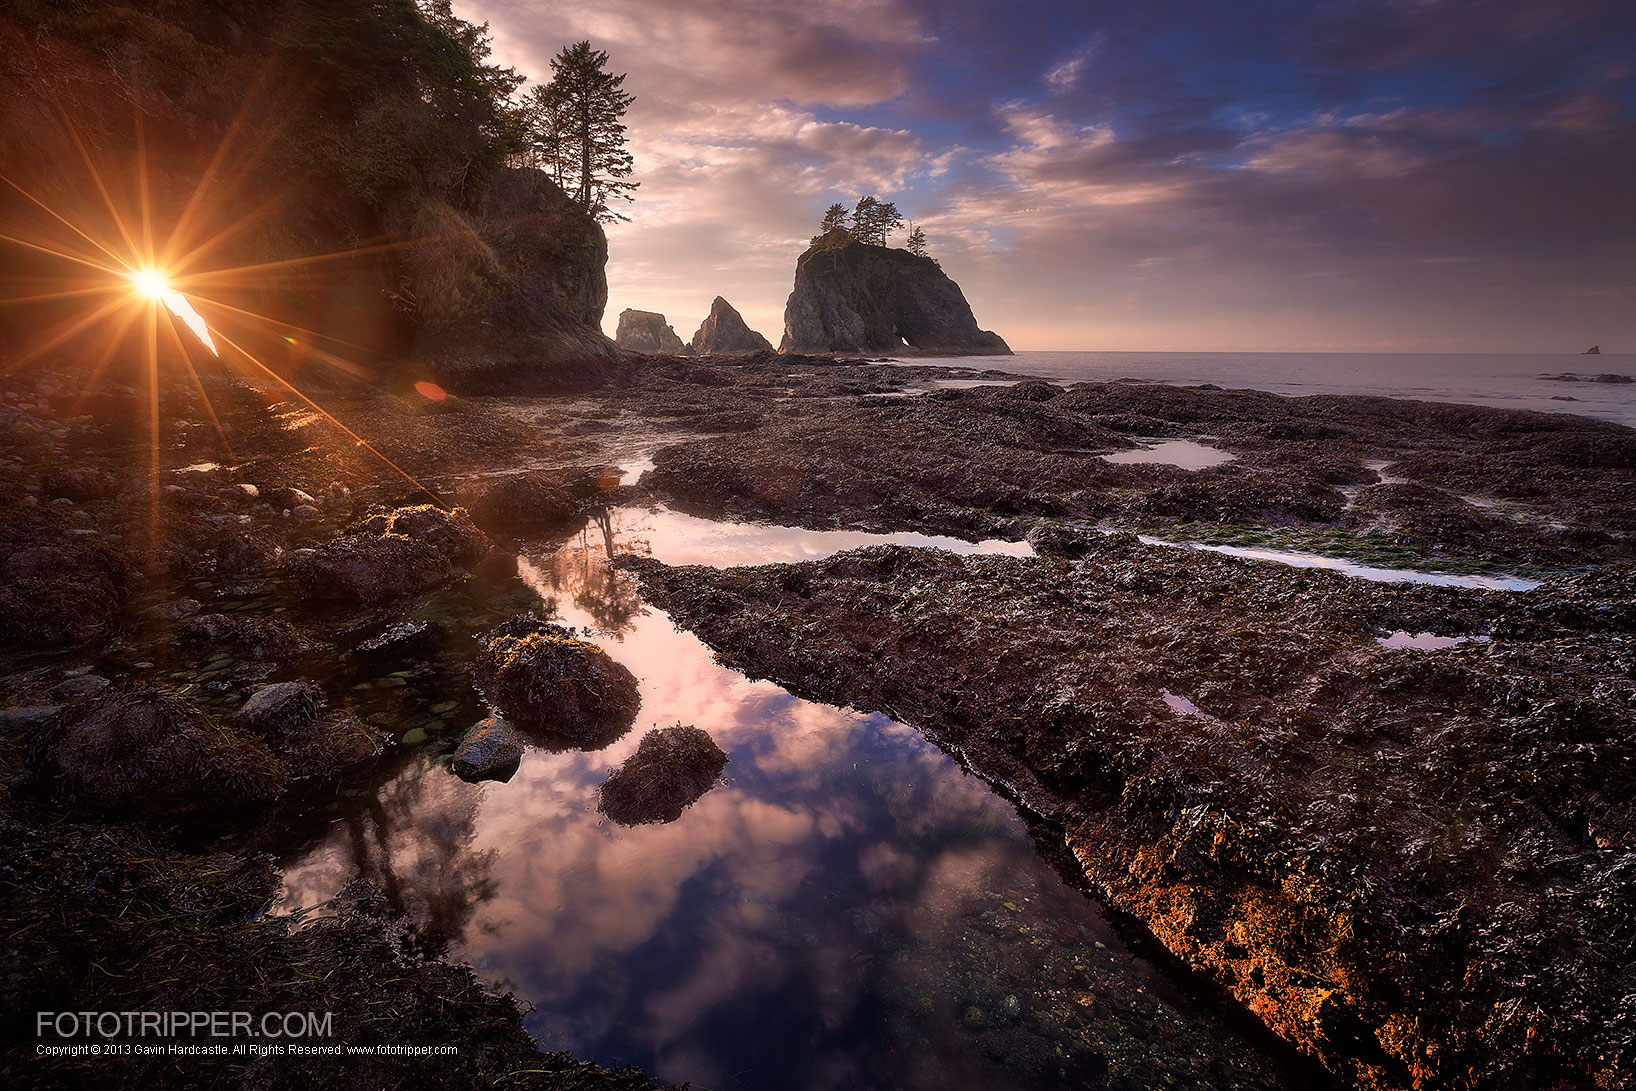 Shi Shi Beach Landscape Photography